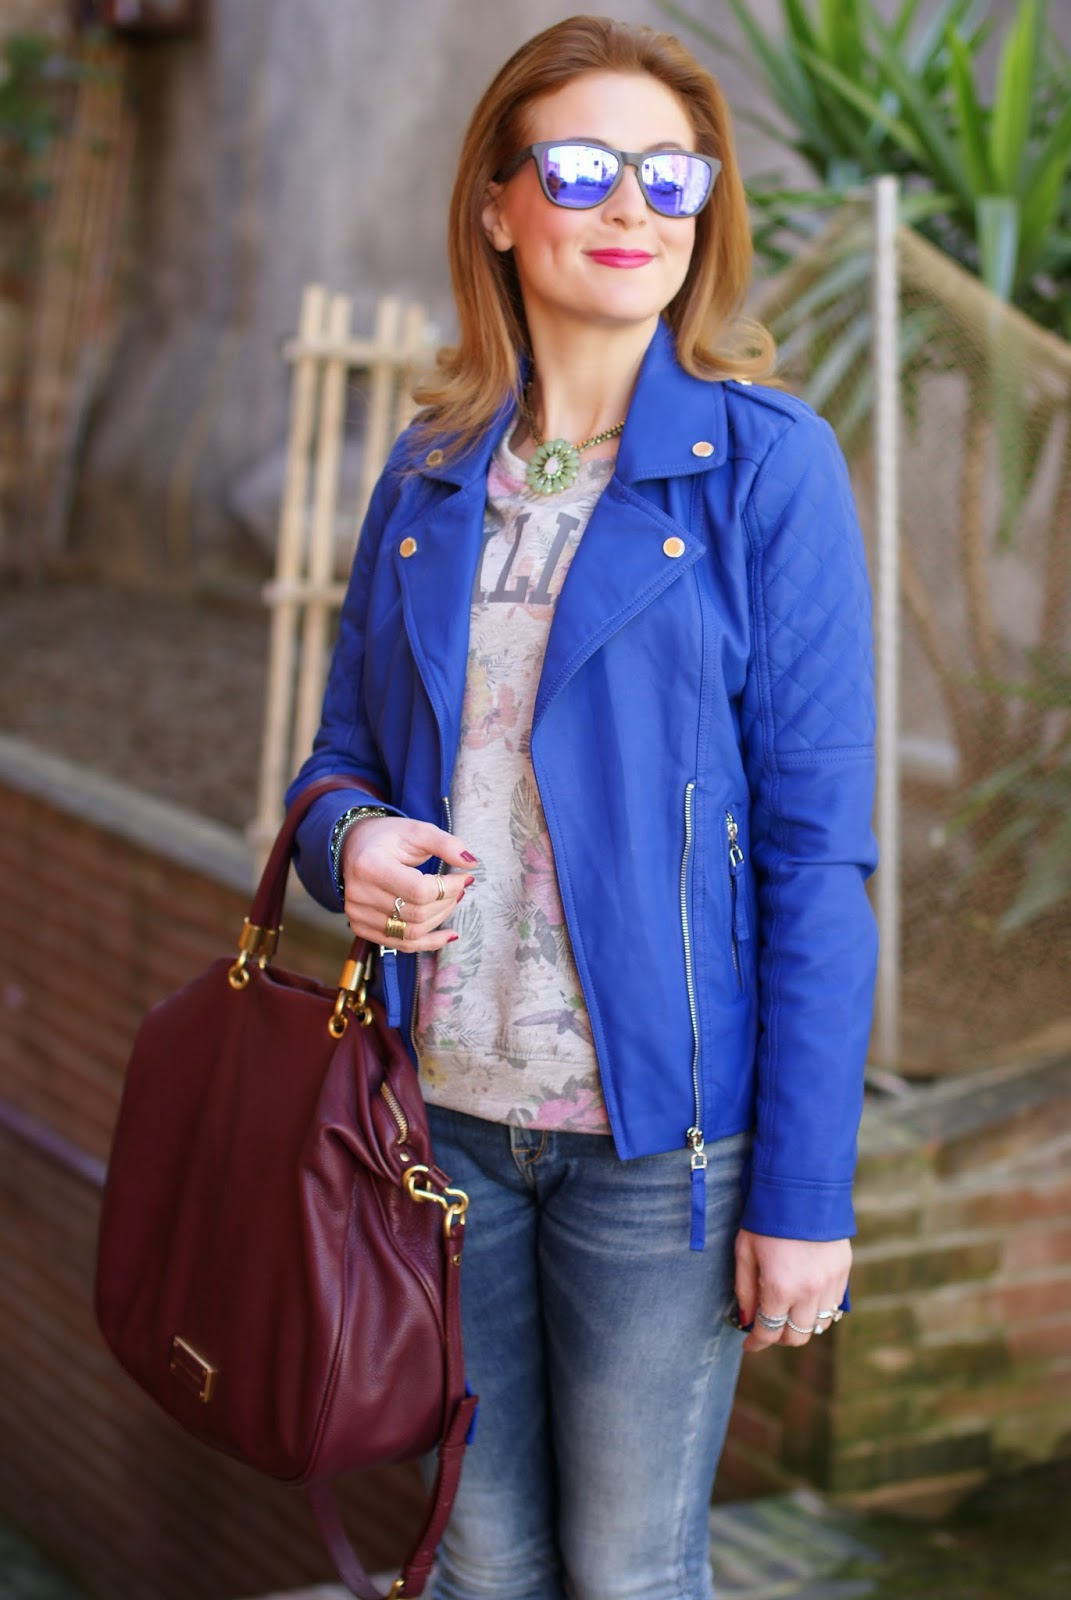 Morgan blue biker jacket, Sodini bijoux collana, Fashion and Cookies, fashion blogger